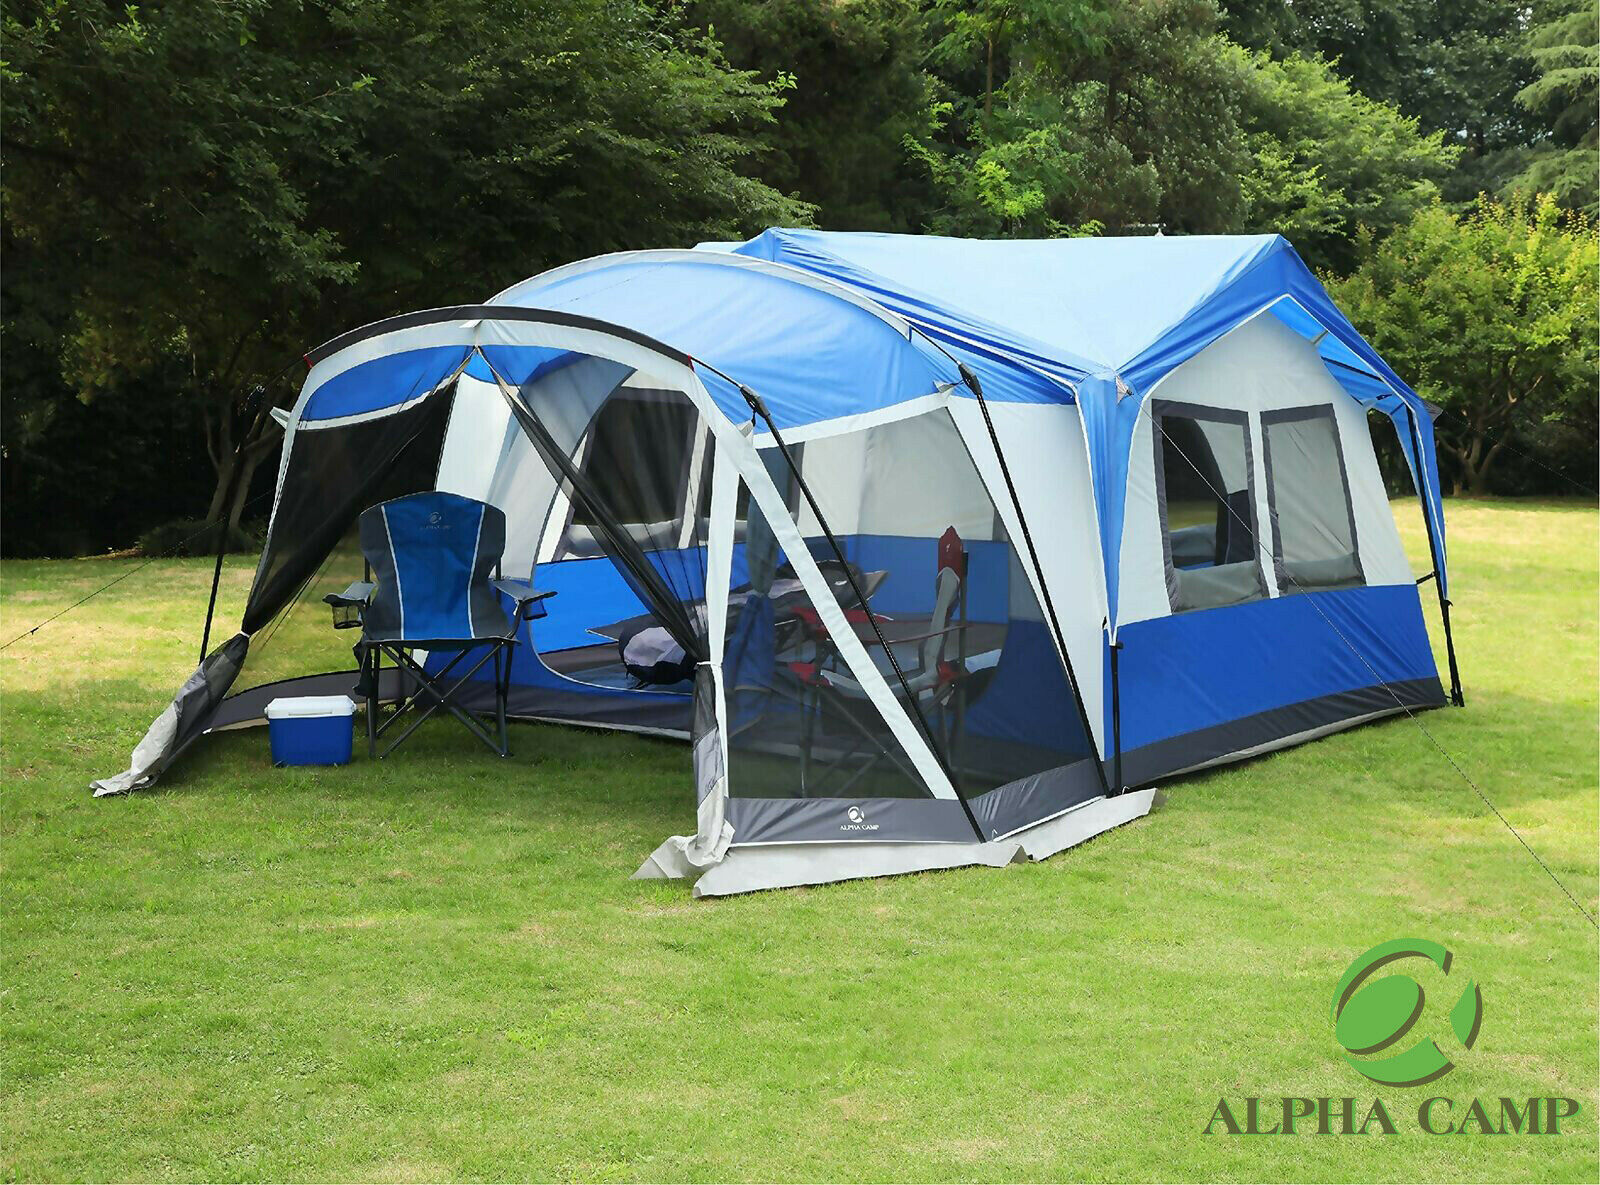 ALPHA CAMP 10-12 Person Family Camping  Tent Screen Room Cabin Tent, 19' x 12'  free shipping on all orders